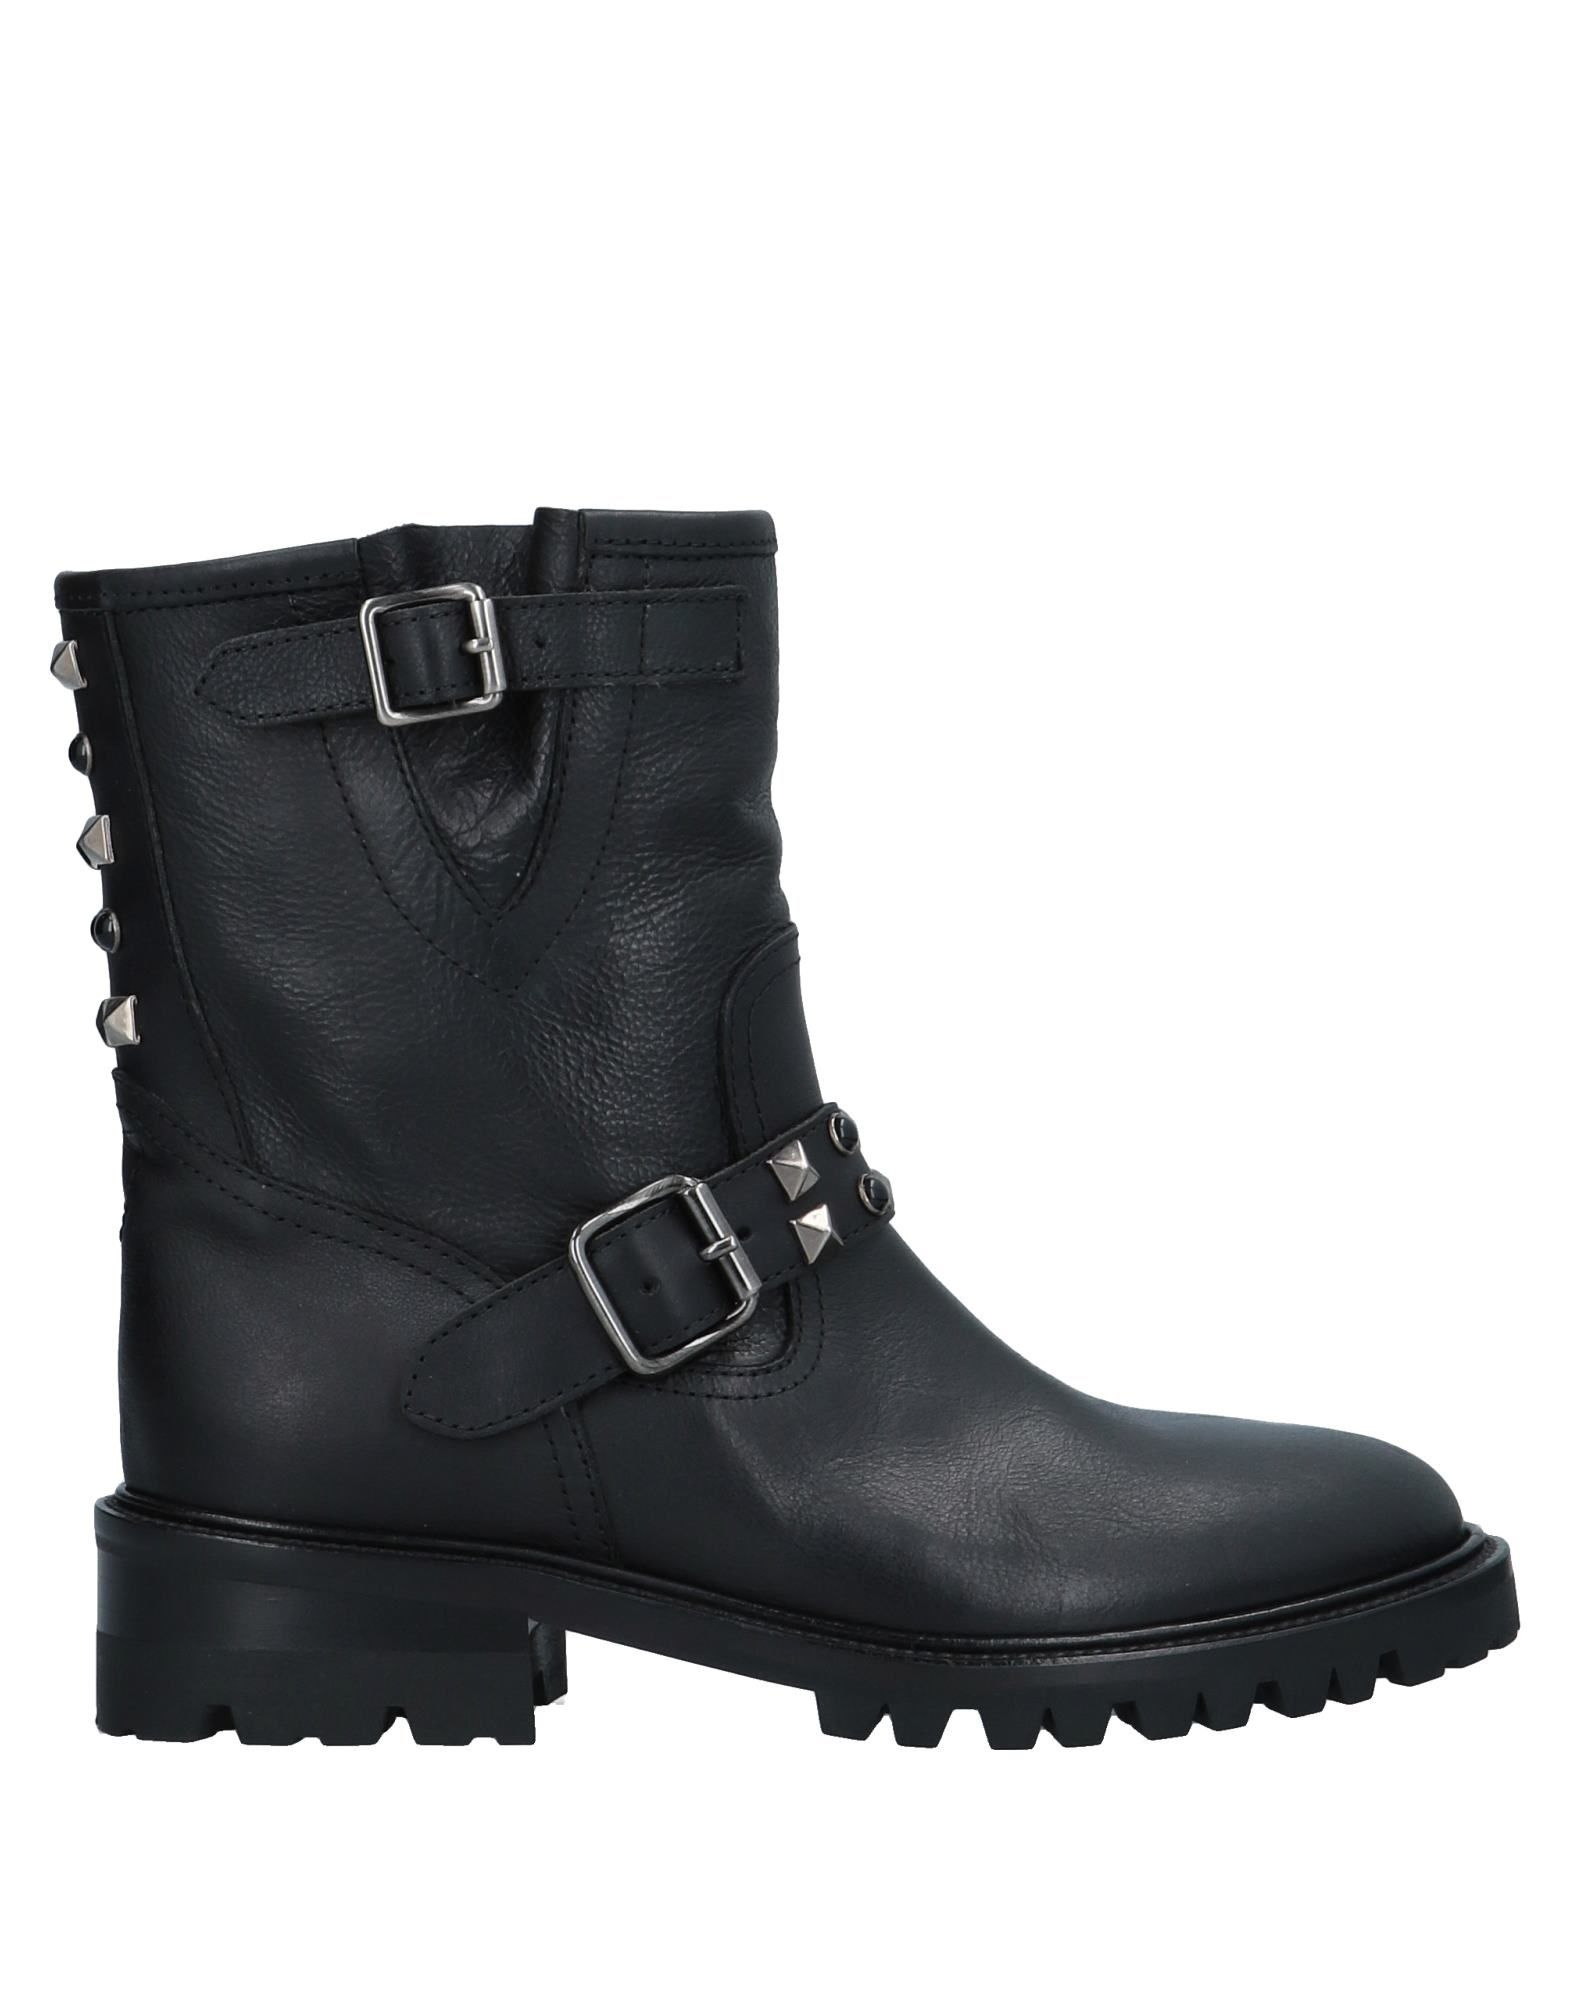 Via - Roma 15 Ankle Boot - Via Women Via Roma 15 Ankle Boots online on  Australia - 11519607DP 5c1a64